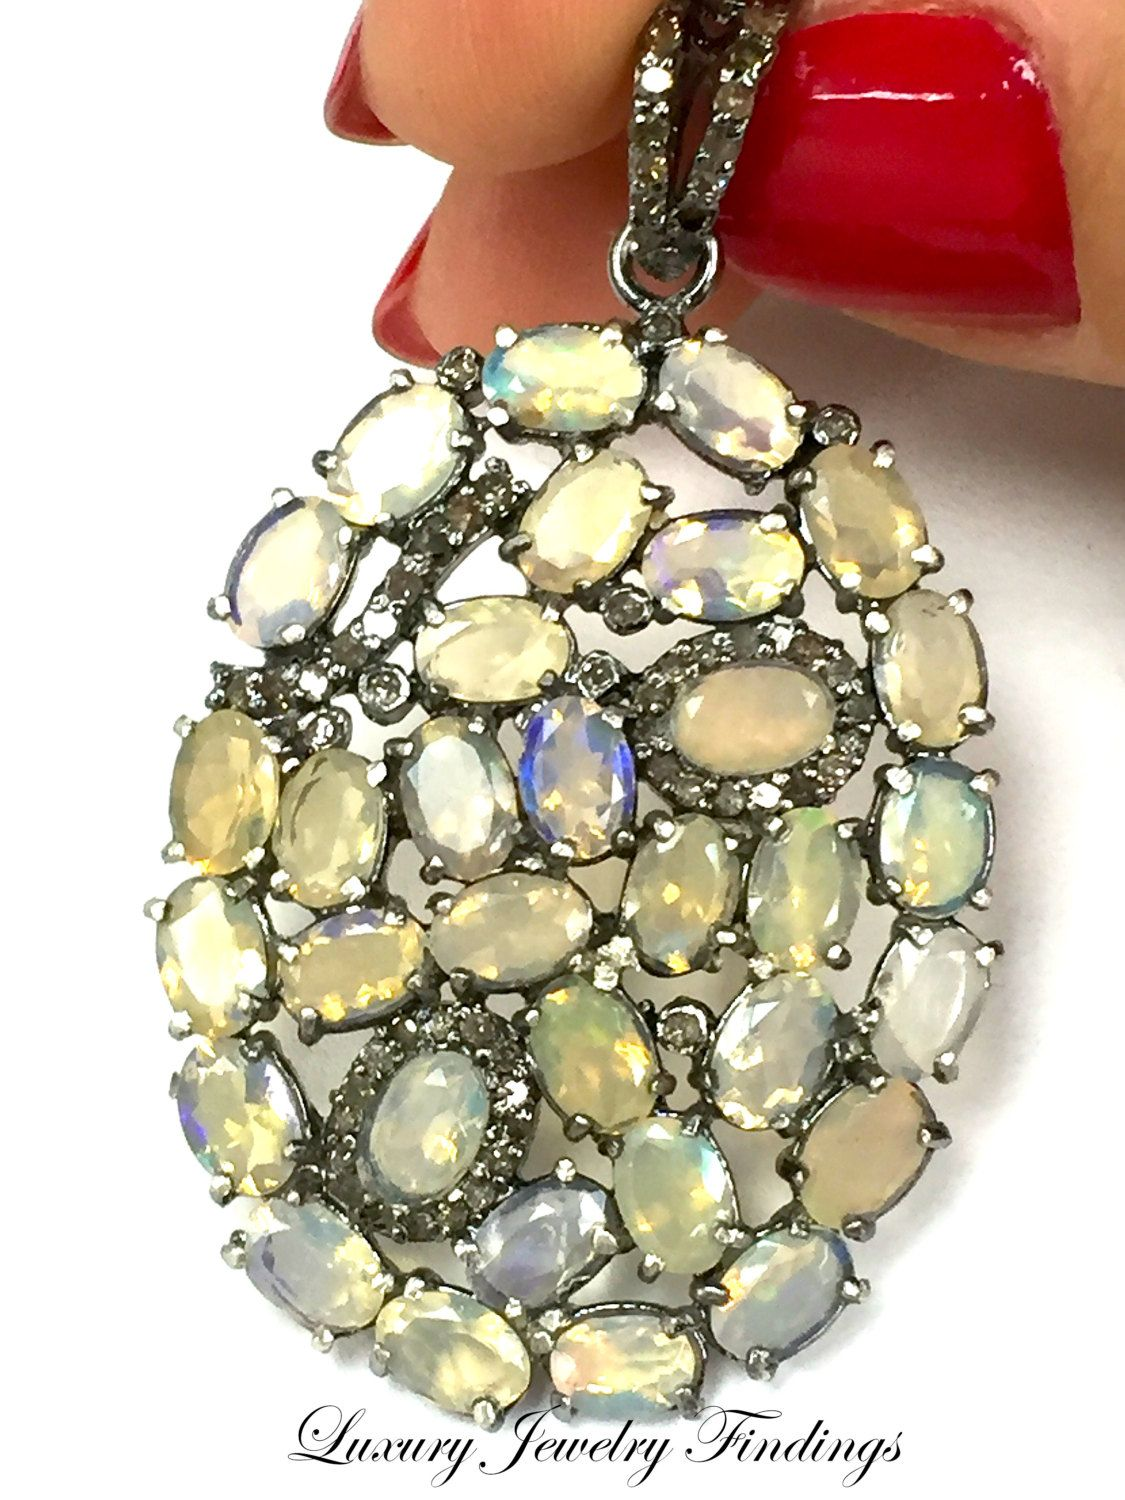 Opal and Diamond Pendant, Gift Ideas for Women,  Opal Pendant Necklace, Pendant Jewelry in Craft Supplies, Pendant Charms, Luxury Jewelry by LuxuryJewelryFinding on Etsy